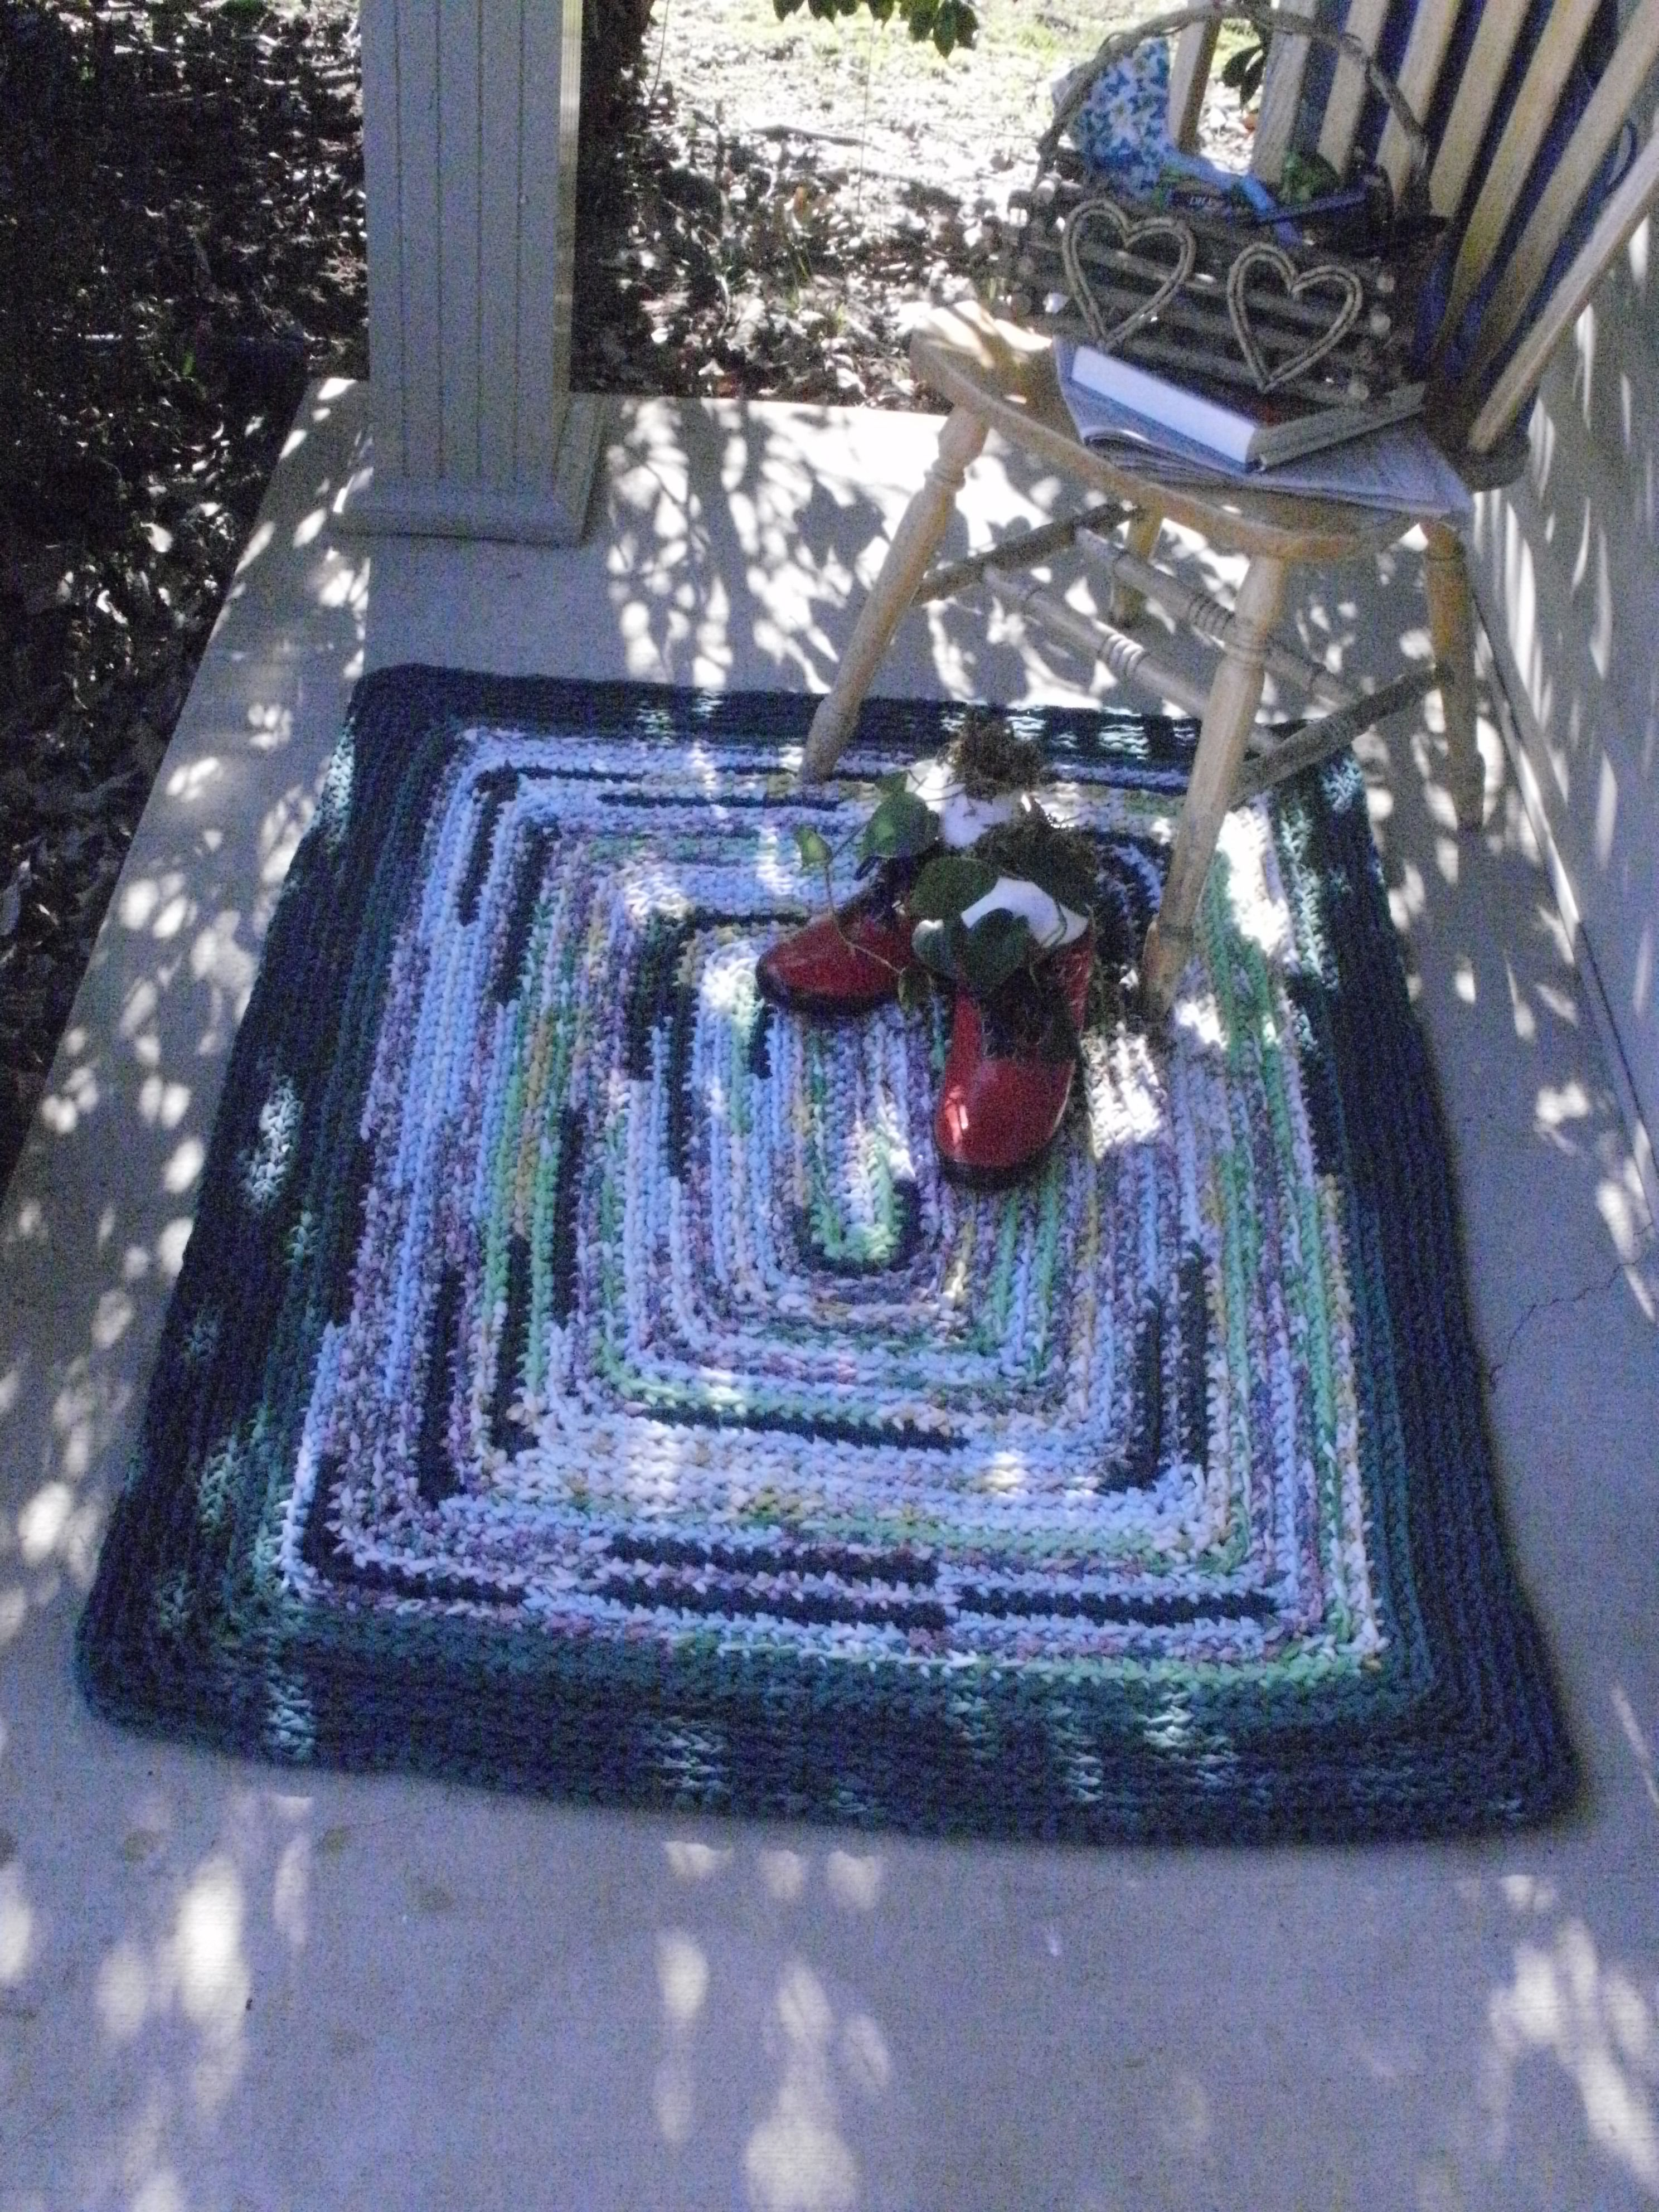 This spring I crocheted this rug using  worn sheets, filled some red boots with plants for a new look to my front porch.  If you would like the pattern to this rug, email me at  ourcreativecrochet@gmail.com.